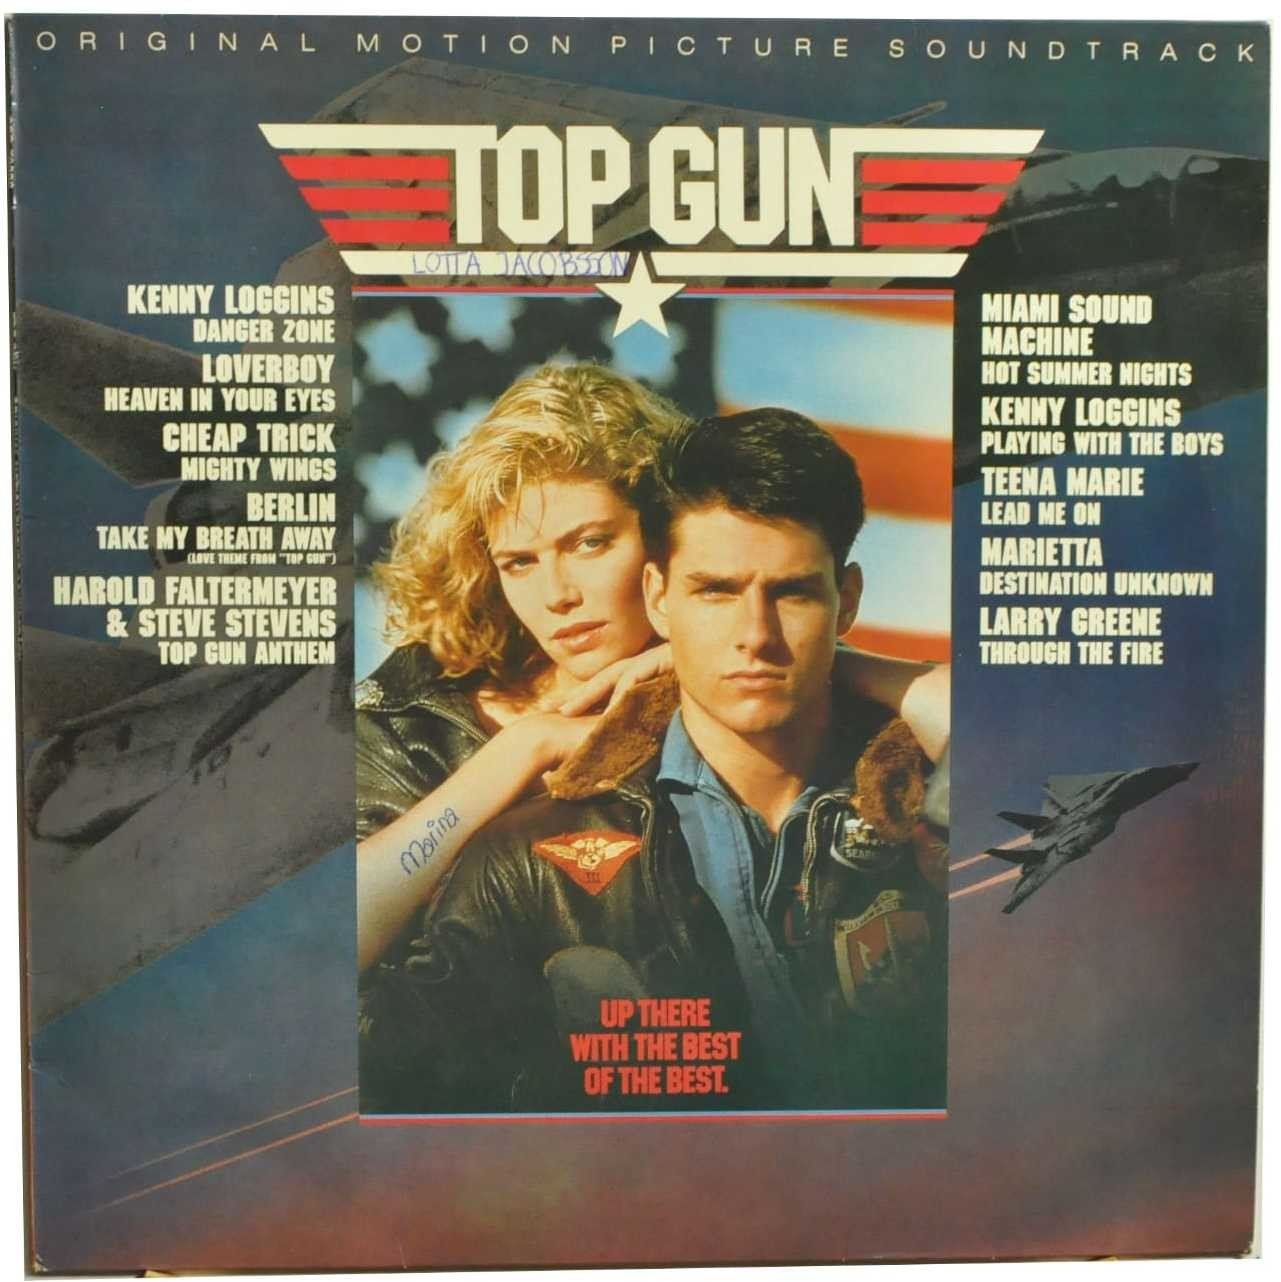 Płyta winylowa, Top Gun Original Motion Picture Soundtrack